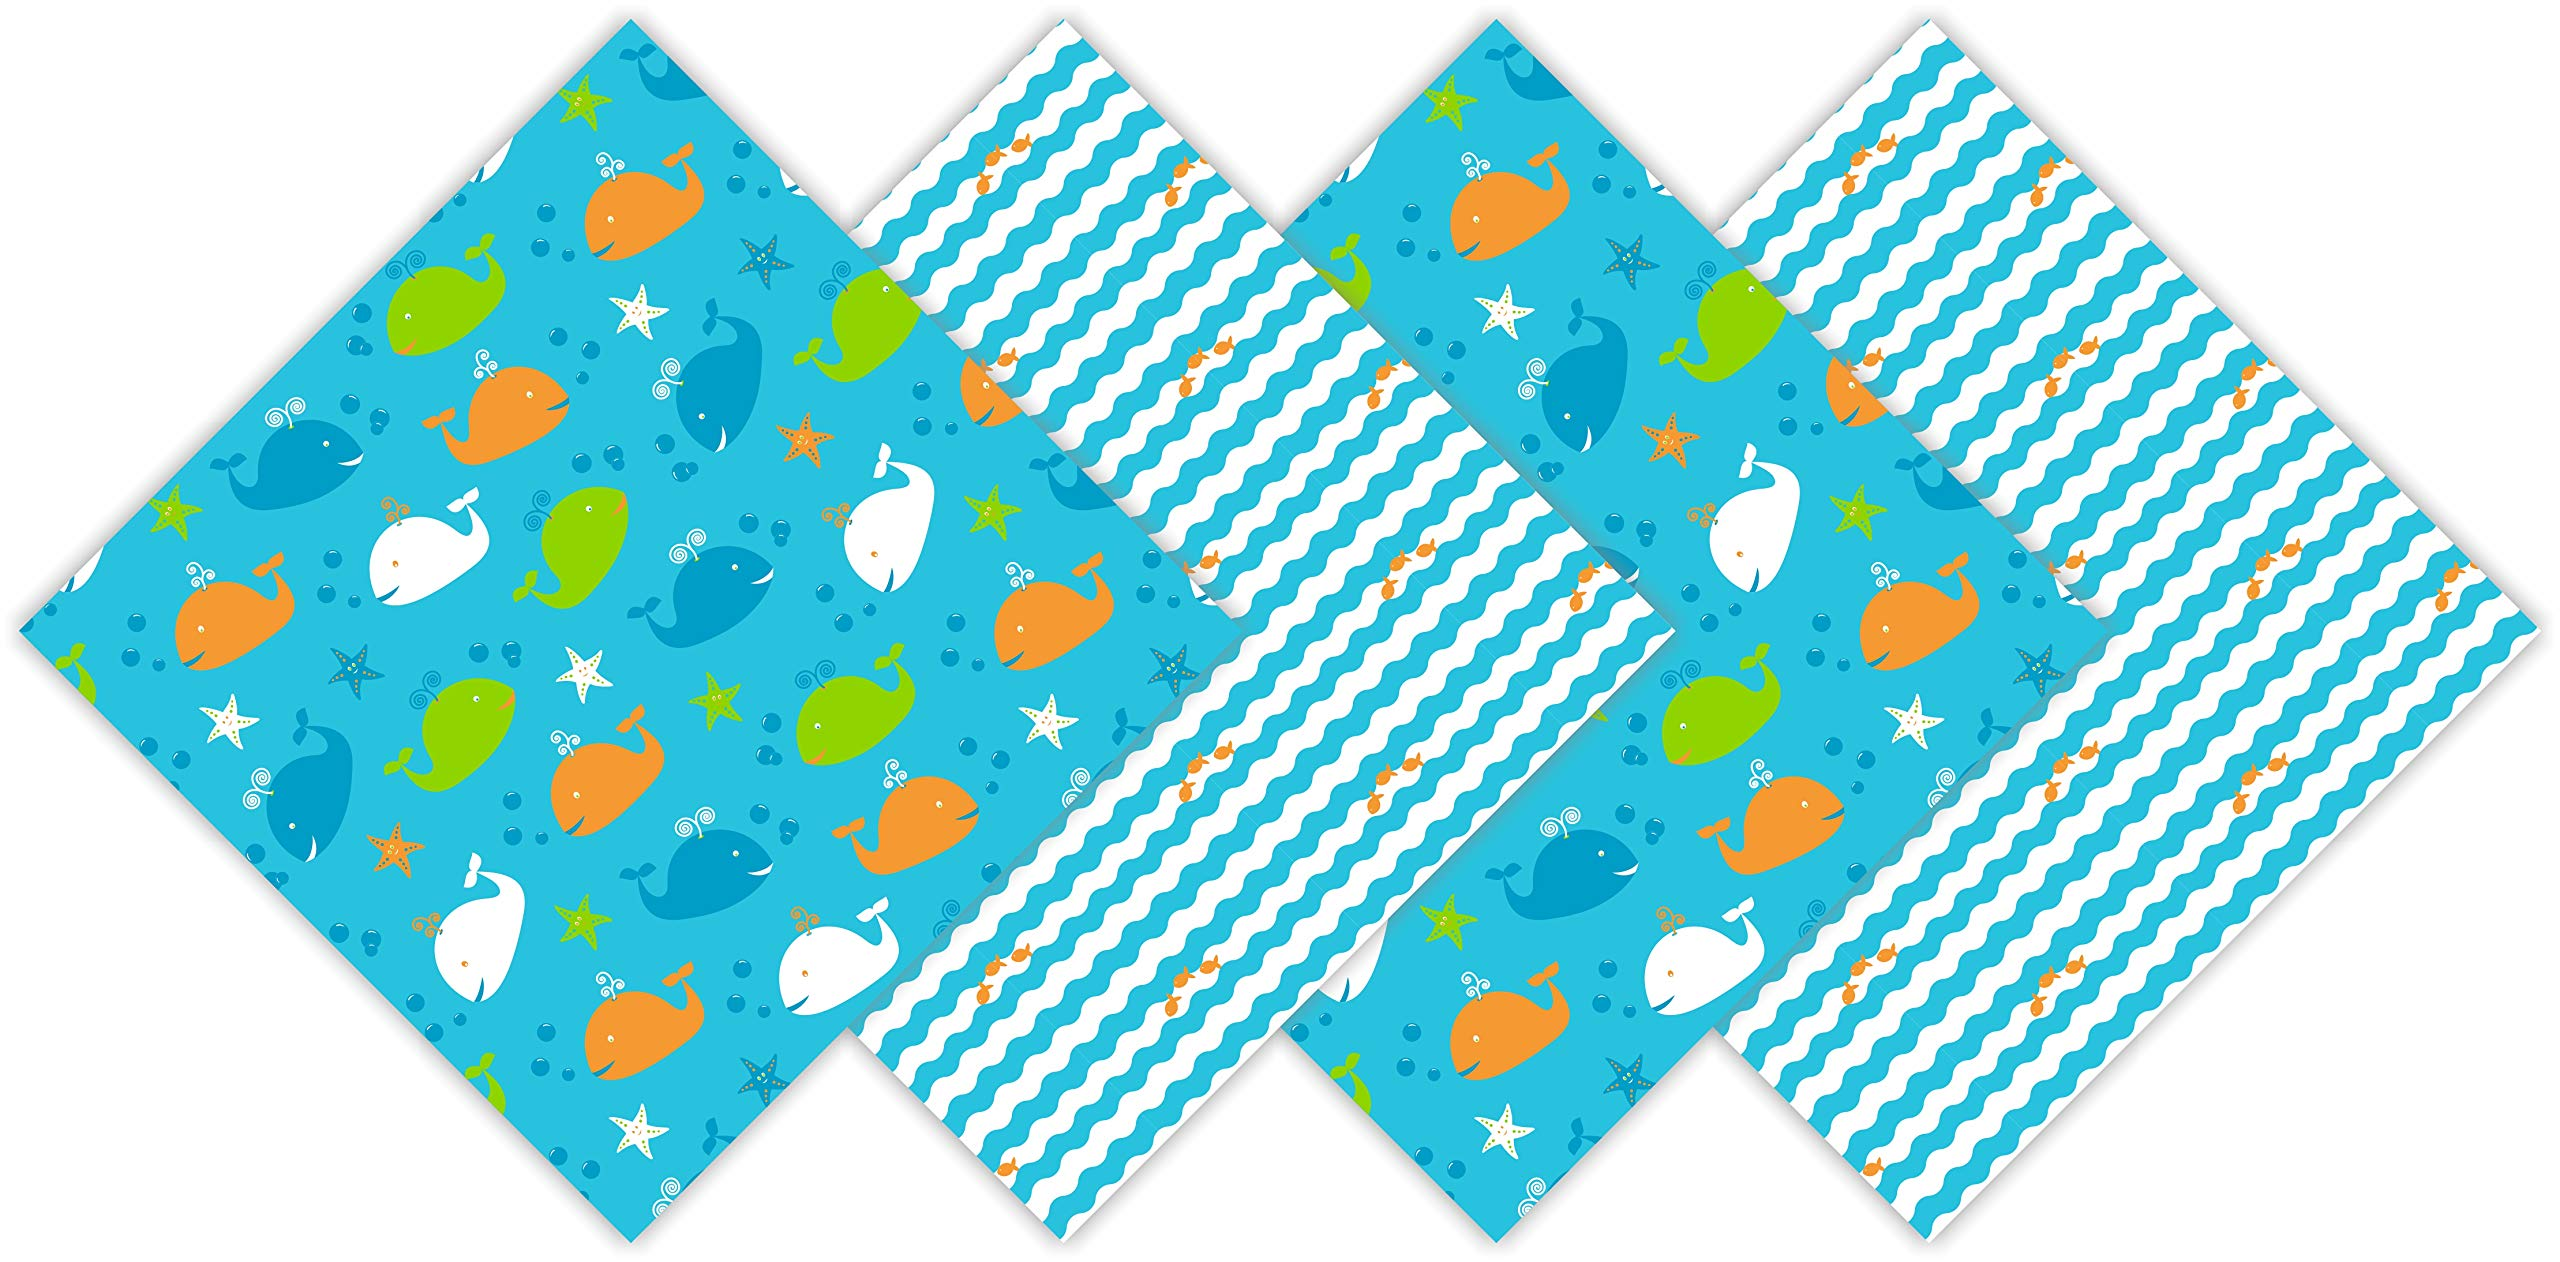 FUN KINS Funkins Reusable Cloth Napkins for Kids | Lunch Boxes | Eco-Friendly | Machine Washable for Easy Care | Name Tag | Set of 4, 12''x12'' Soft Cotton Napkins, Under The Sea, Whales